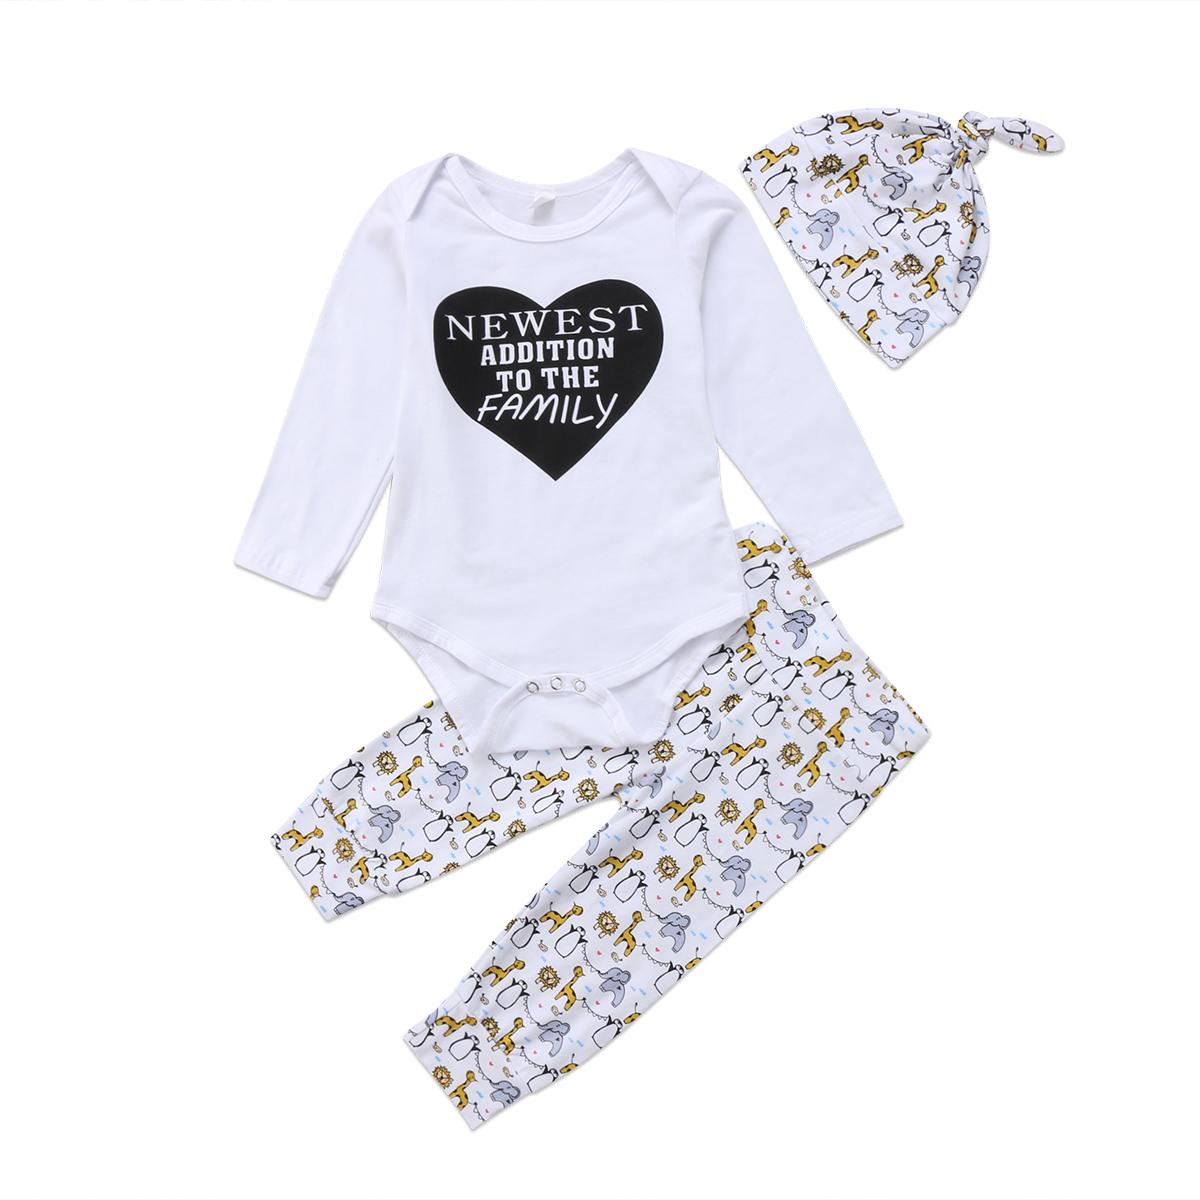 4c809f43a 2019 2017 Valentine Newborn Baby Boys Girls Outfits Long Sleeves ...